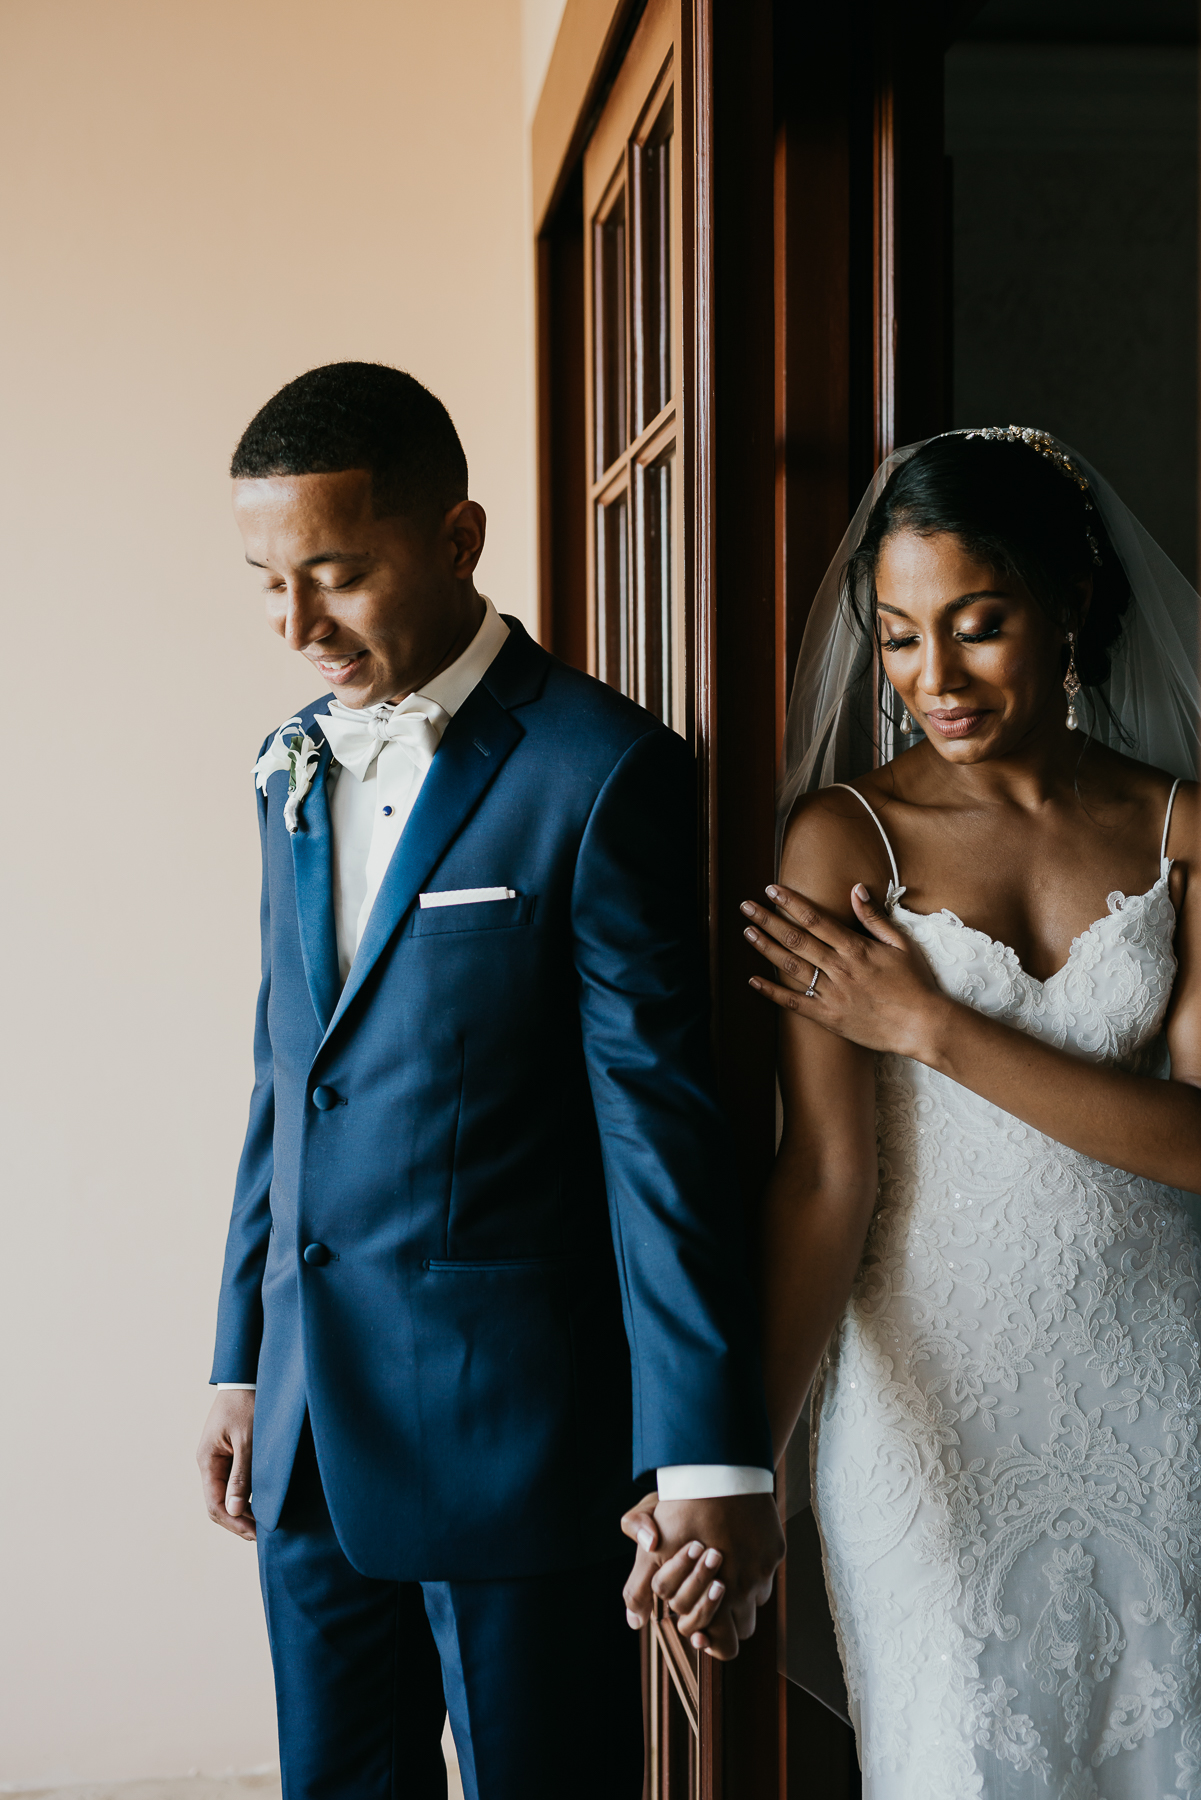 Groom with Real Bride Wearing Lace Sheath Wedding Gown Called Bristol by Sottero and Midgley